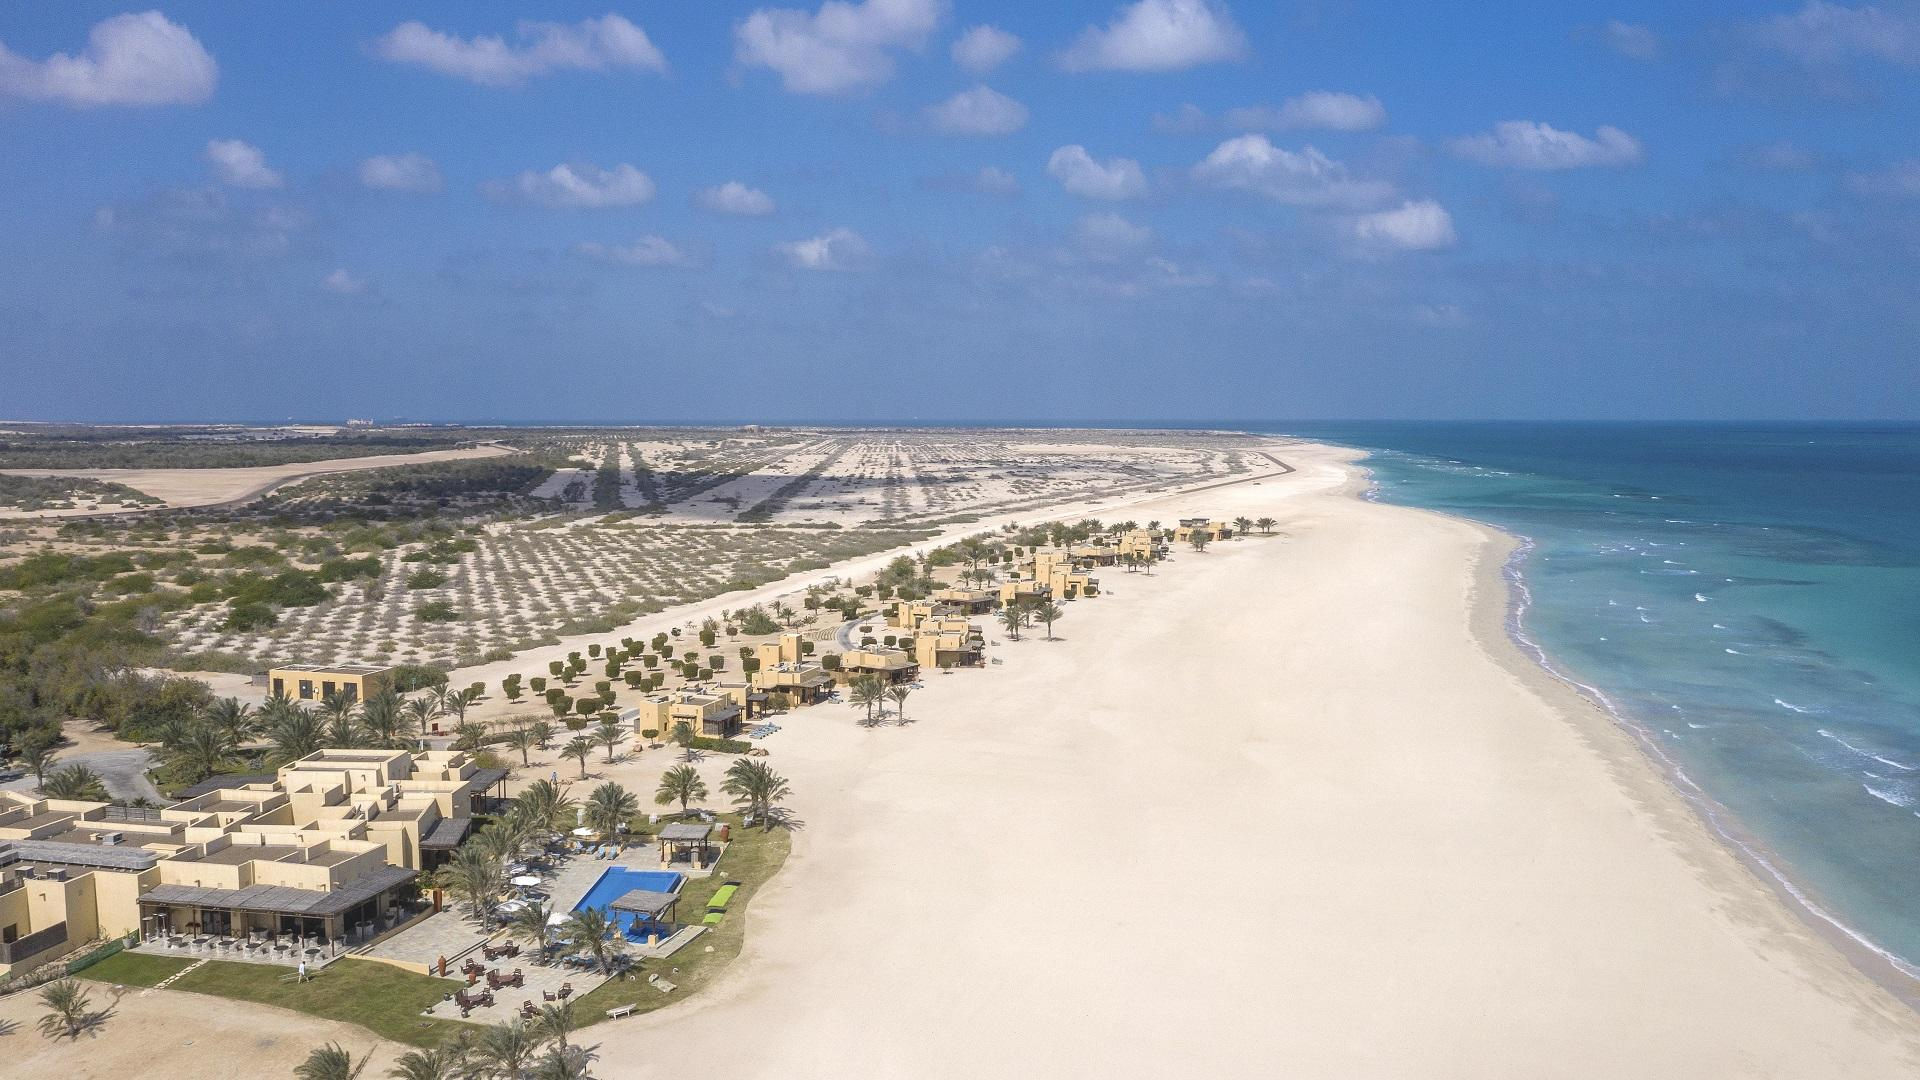 Anantara_Sir_Bani_Yas_Island_Al_Yamm_Villa_Resort_Exterior_View_Beach_Villas_with_Ocean_Beach_and_Island